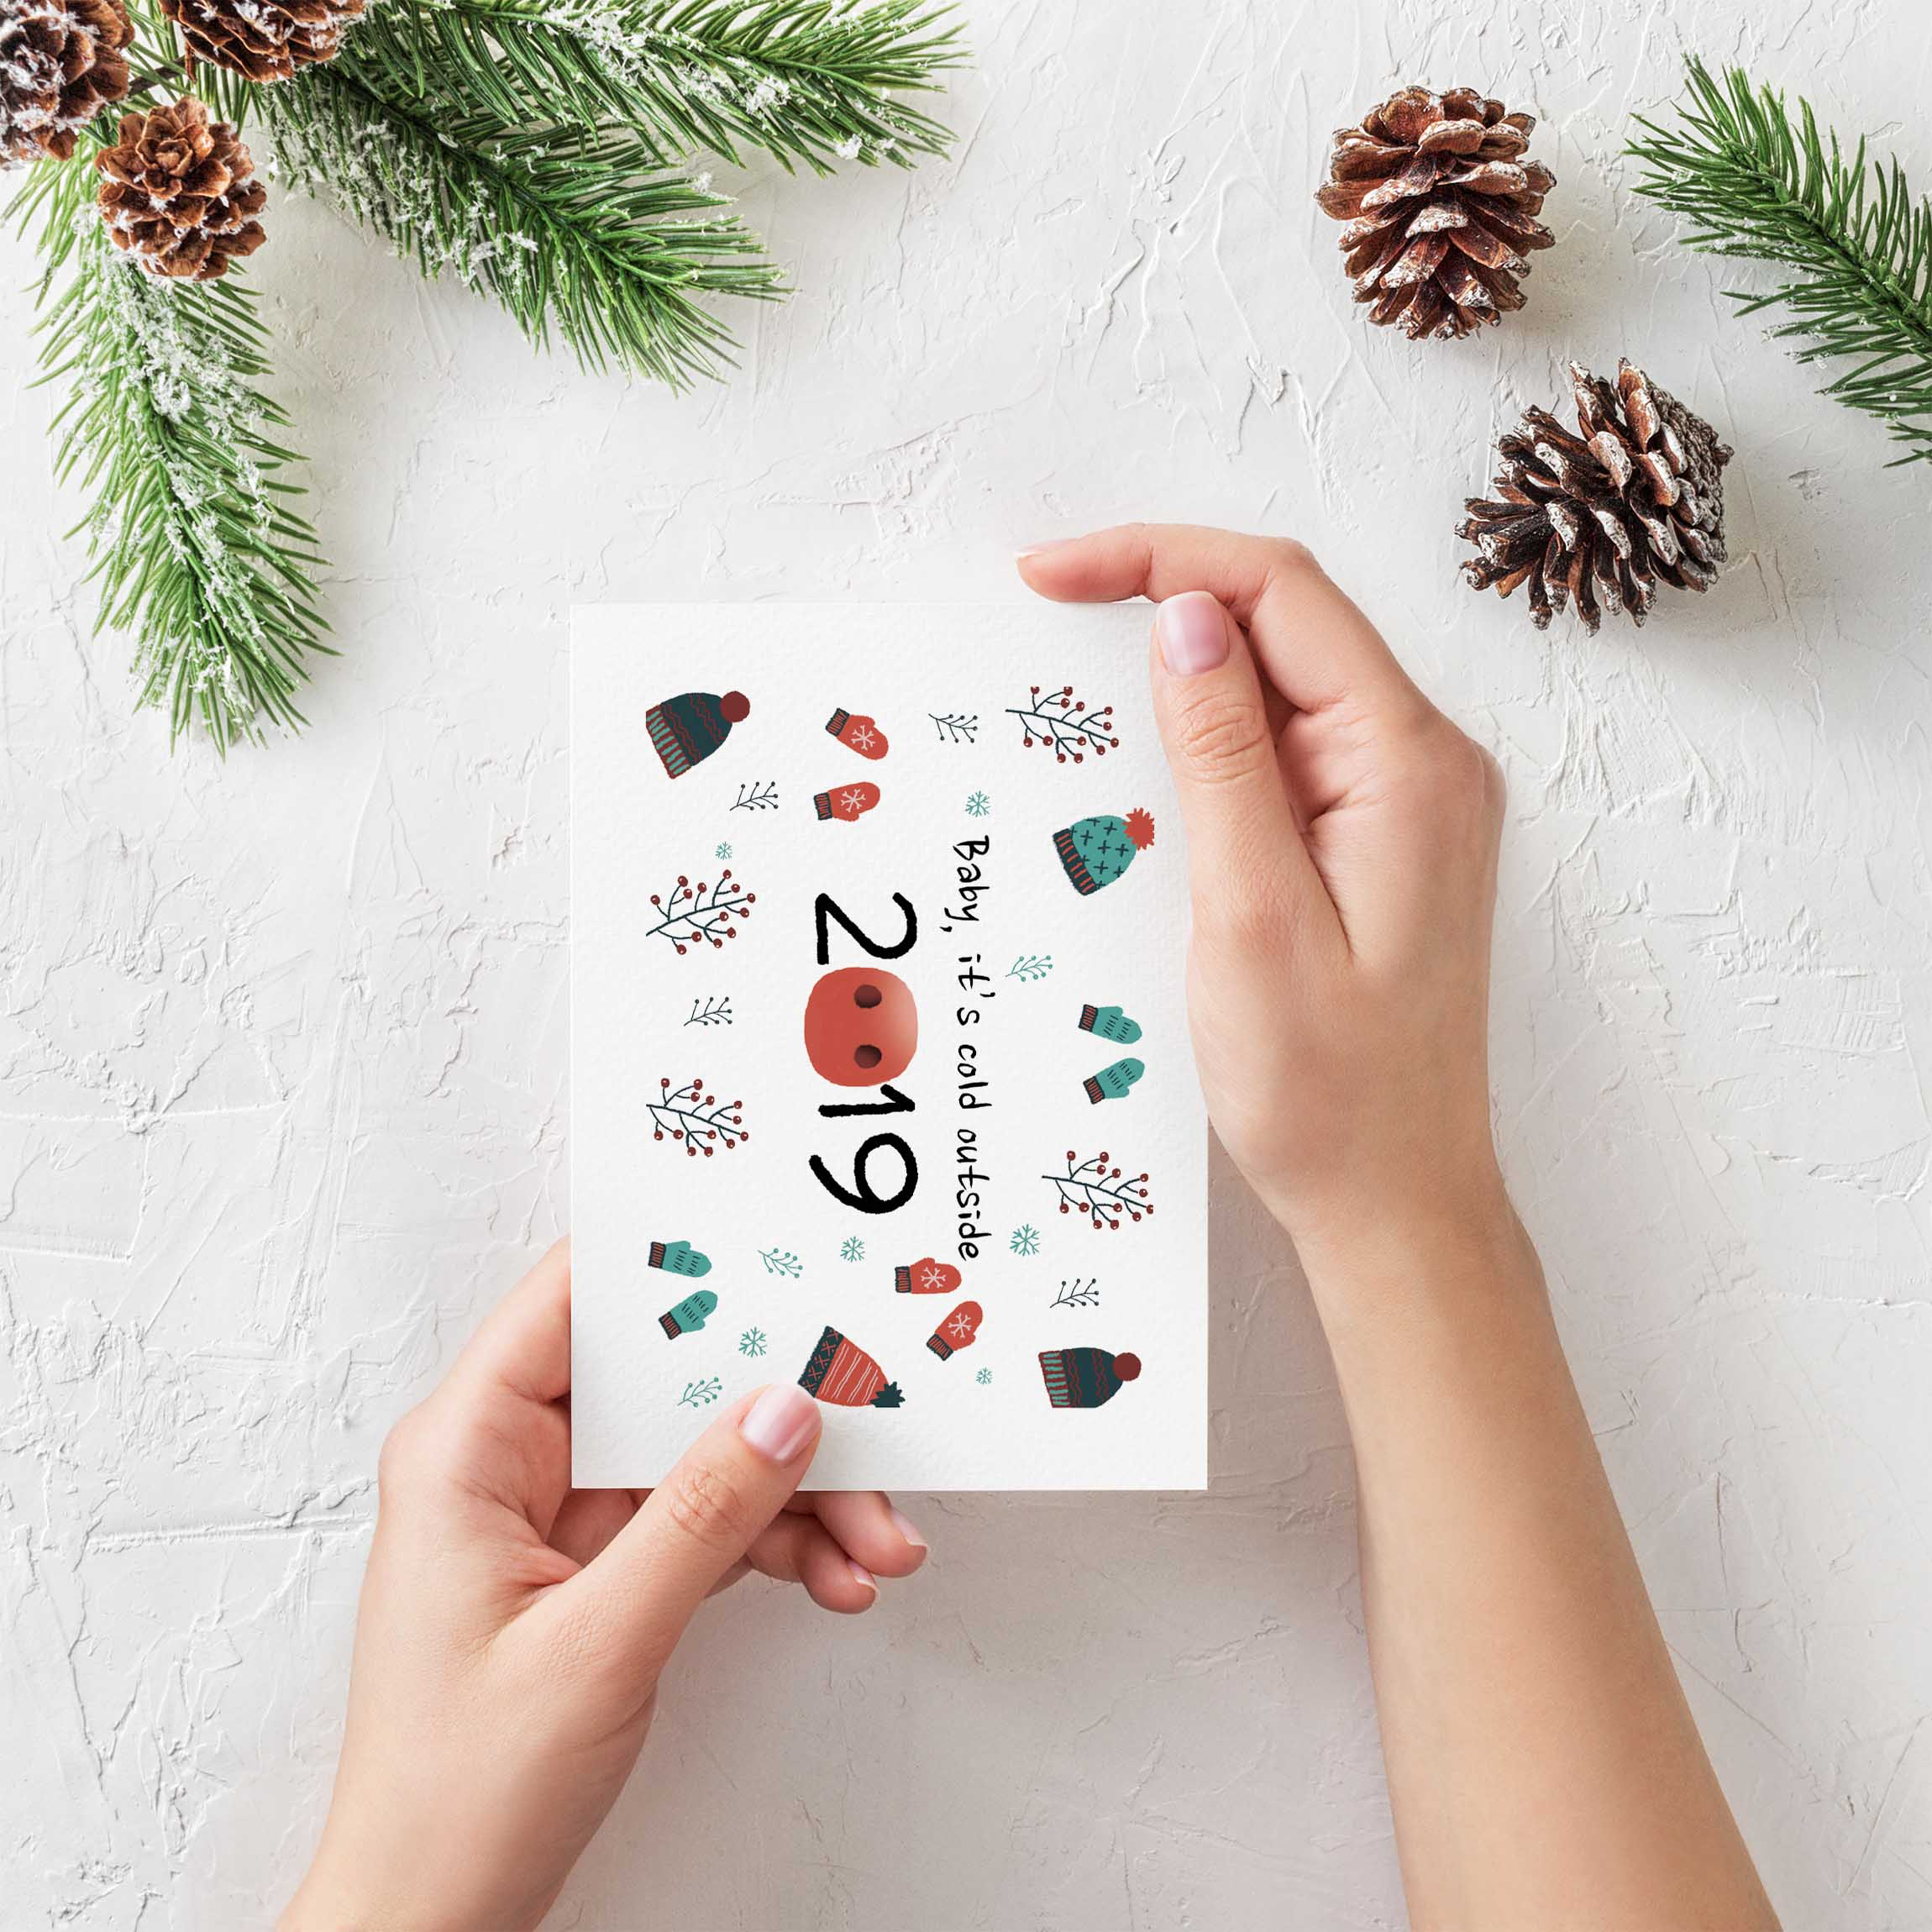 Best Greeting Cards for Perfect Holiday Gifts: 2019 - Free Christmas Greeting Card Mockup